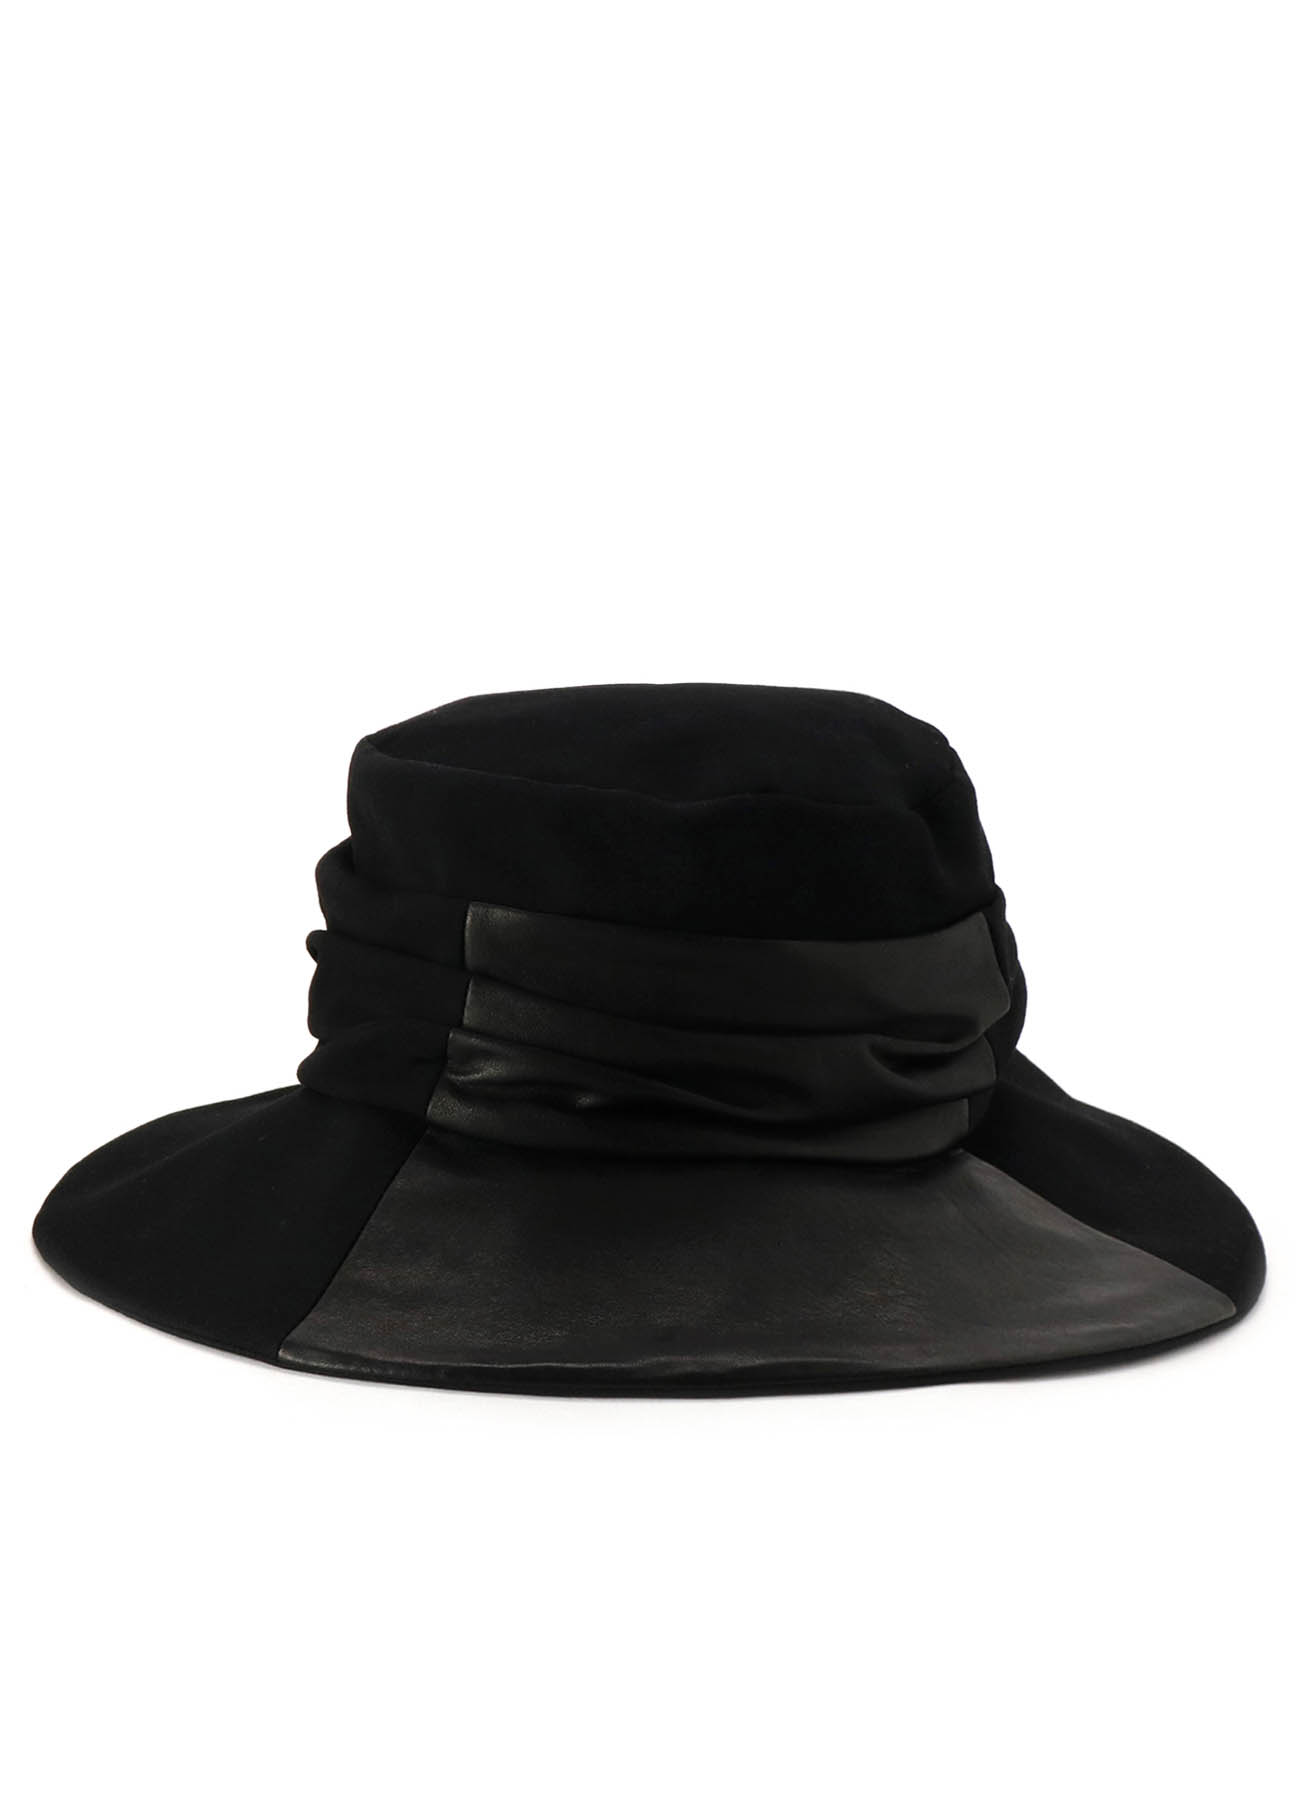 GABARDINE COW LEATHER COMBI HAT